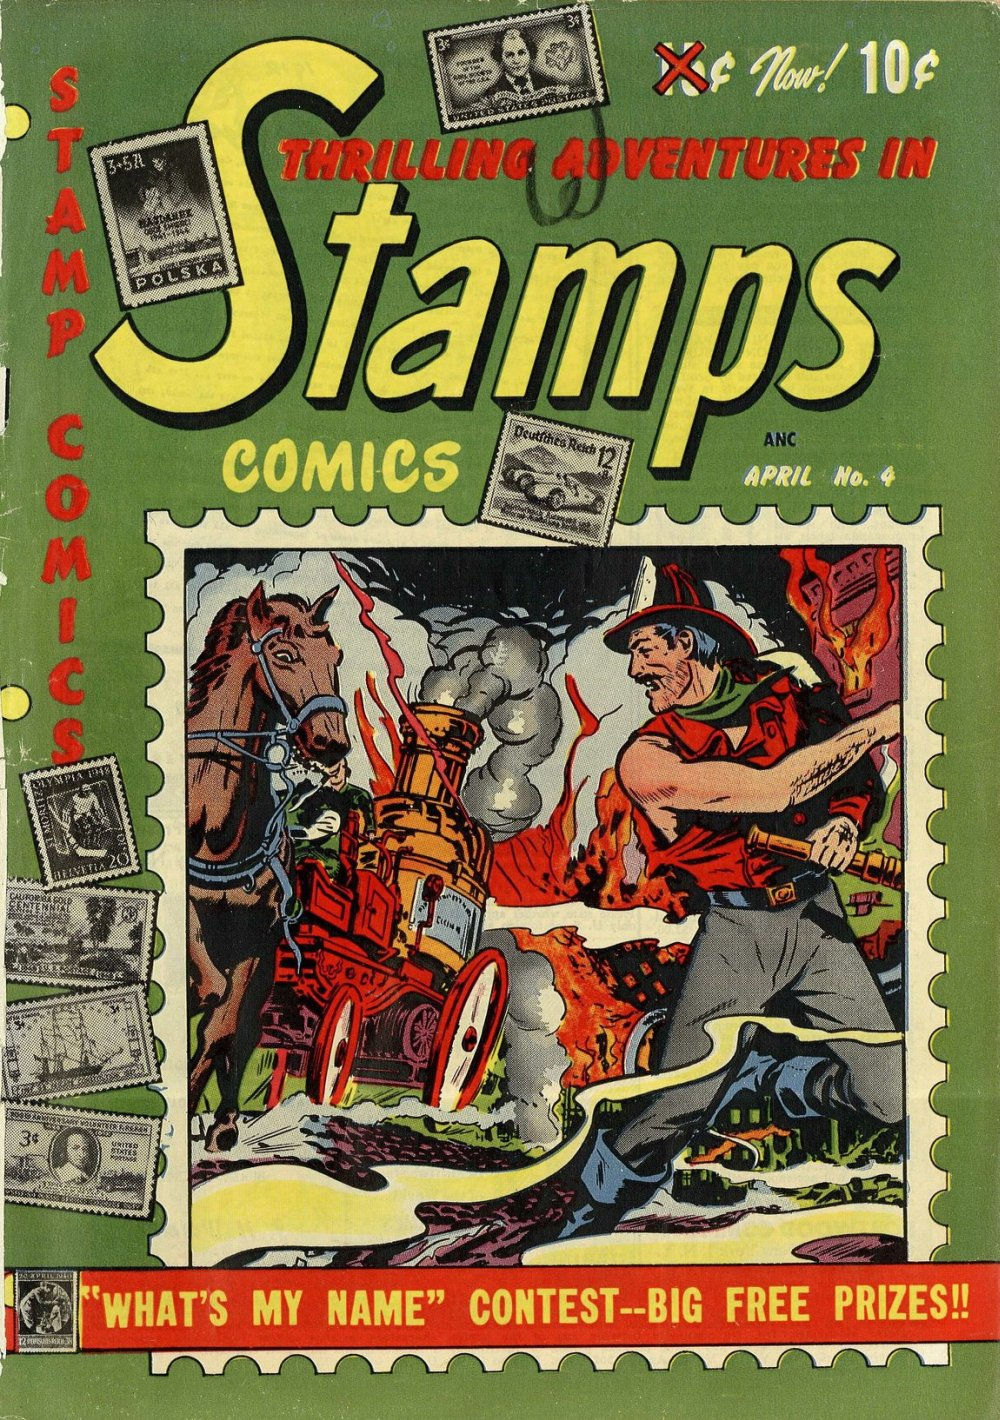 Thrilling Adventures In Stamps Comics [UNKNOWN] OS1 0007.jpg